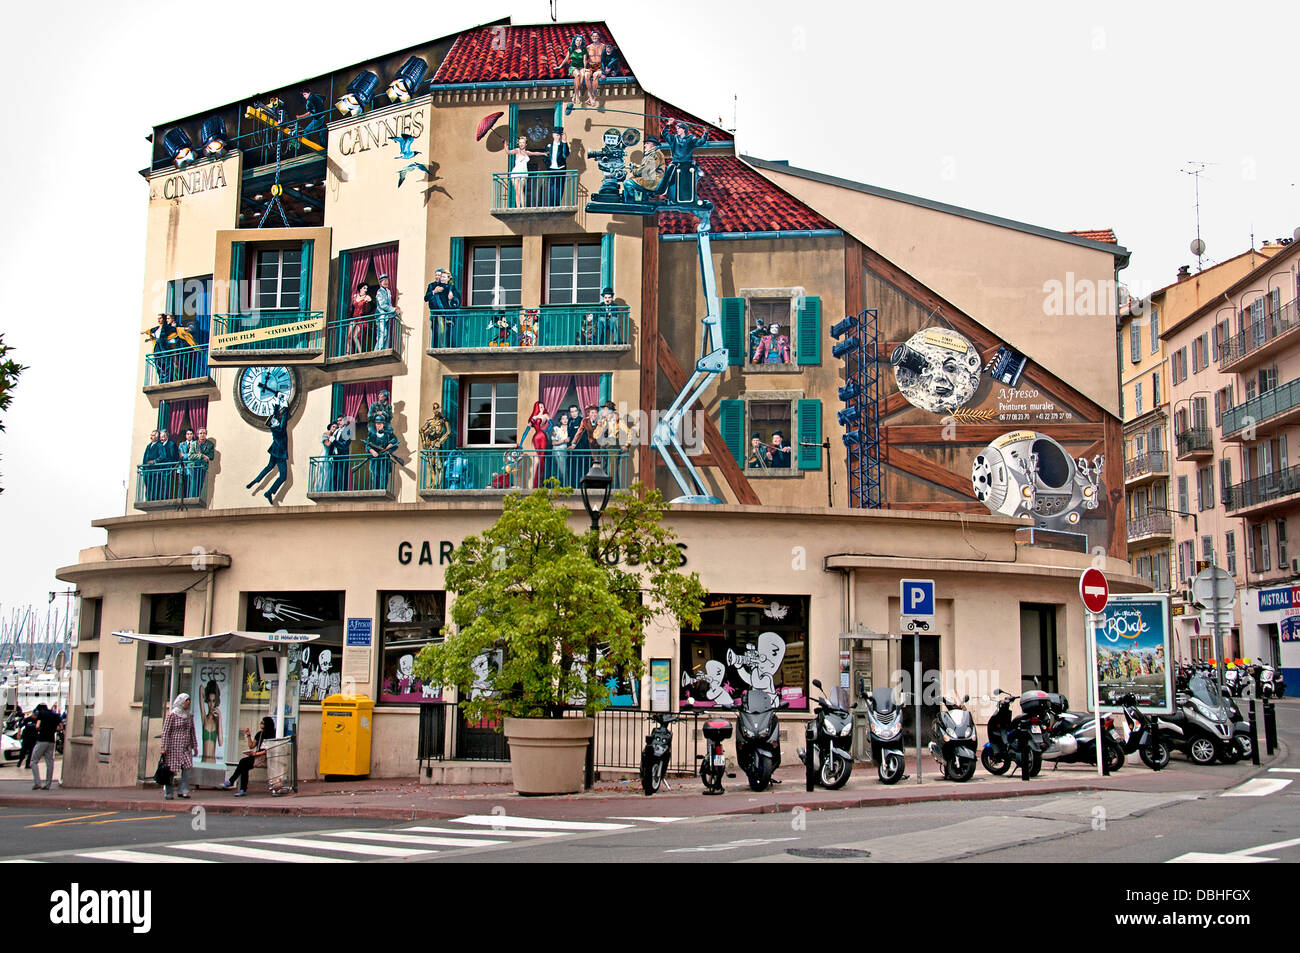 Movie Film Festival Of Cannes Wall Painting in Old Vieux Port French Riviera Cote D'Azur France - Stock Image